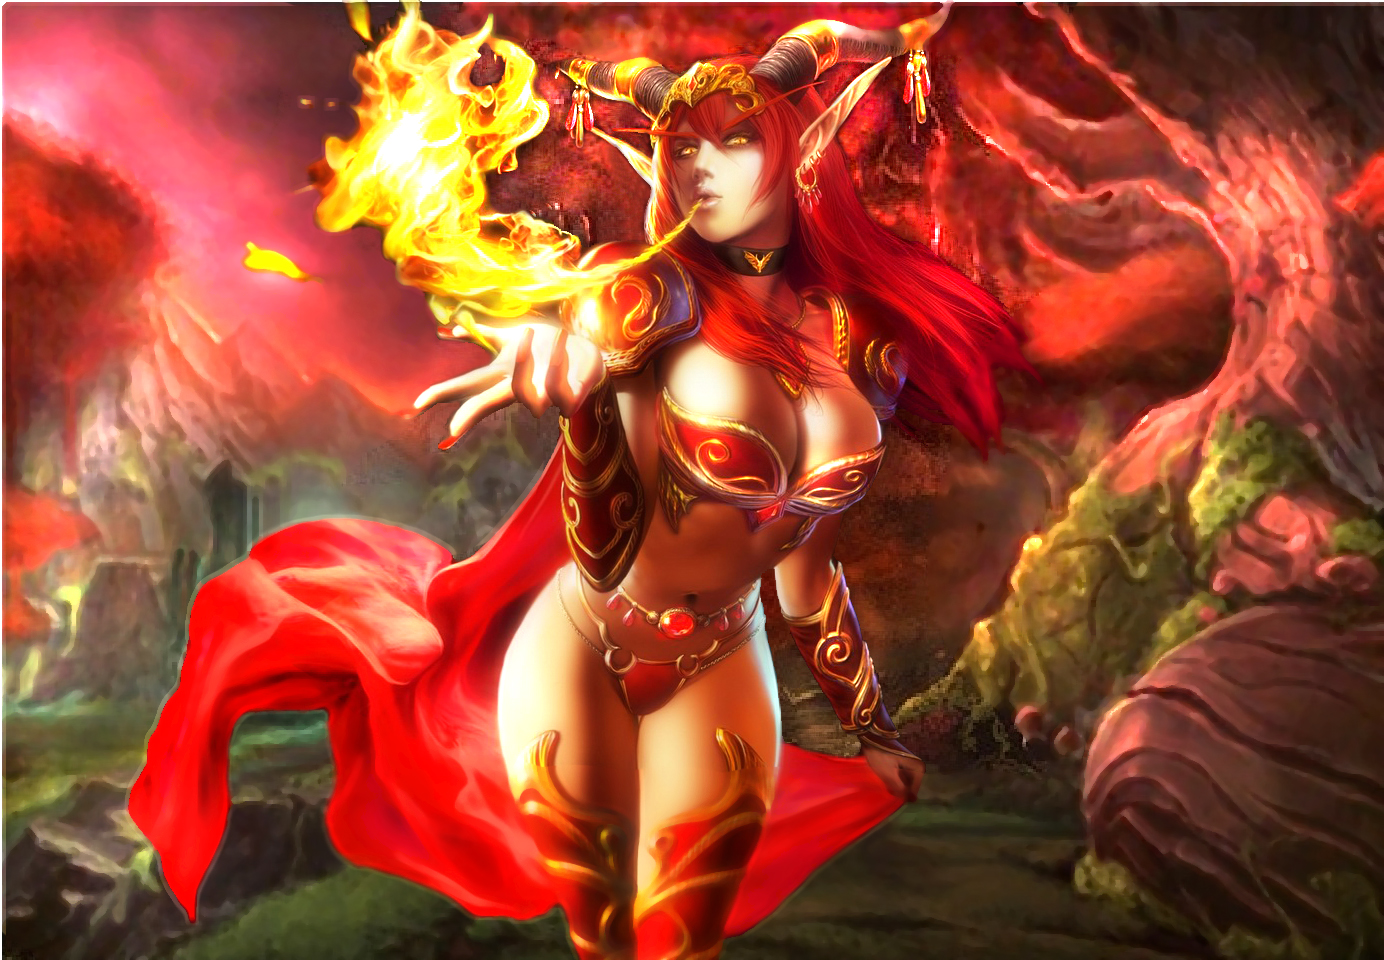 Alexstrasza girl nsfw download